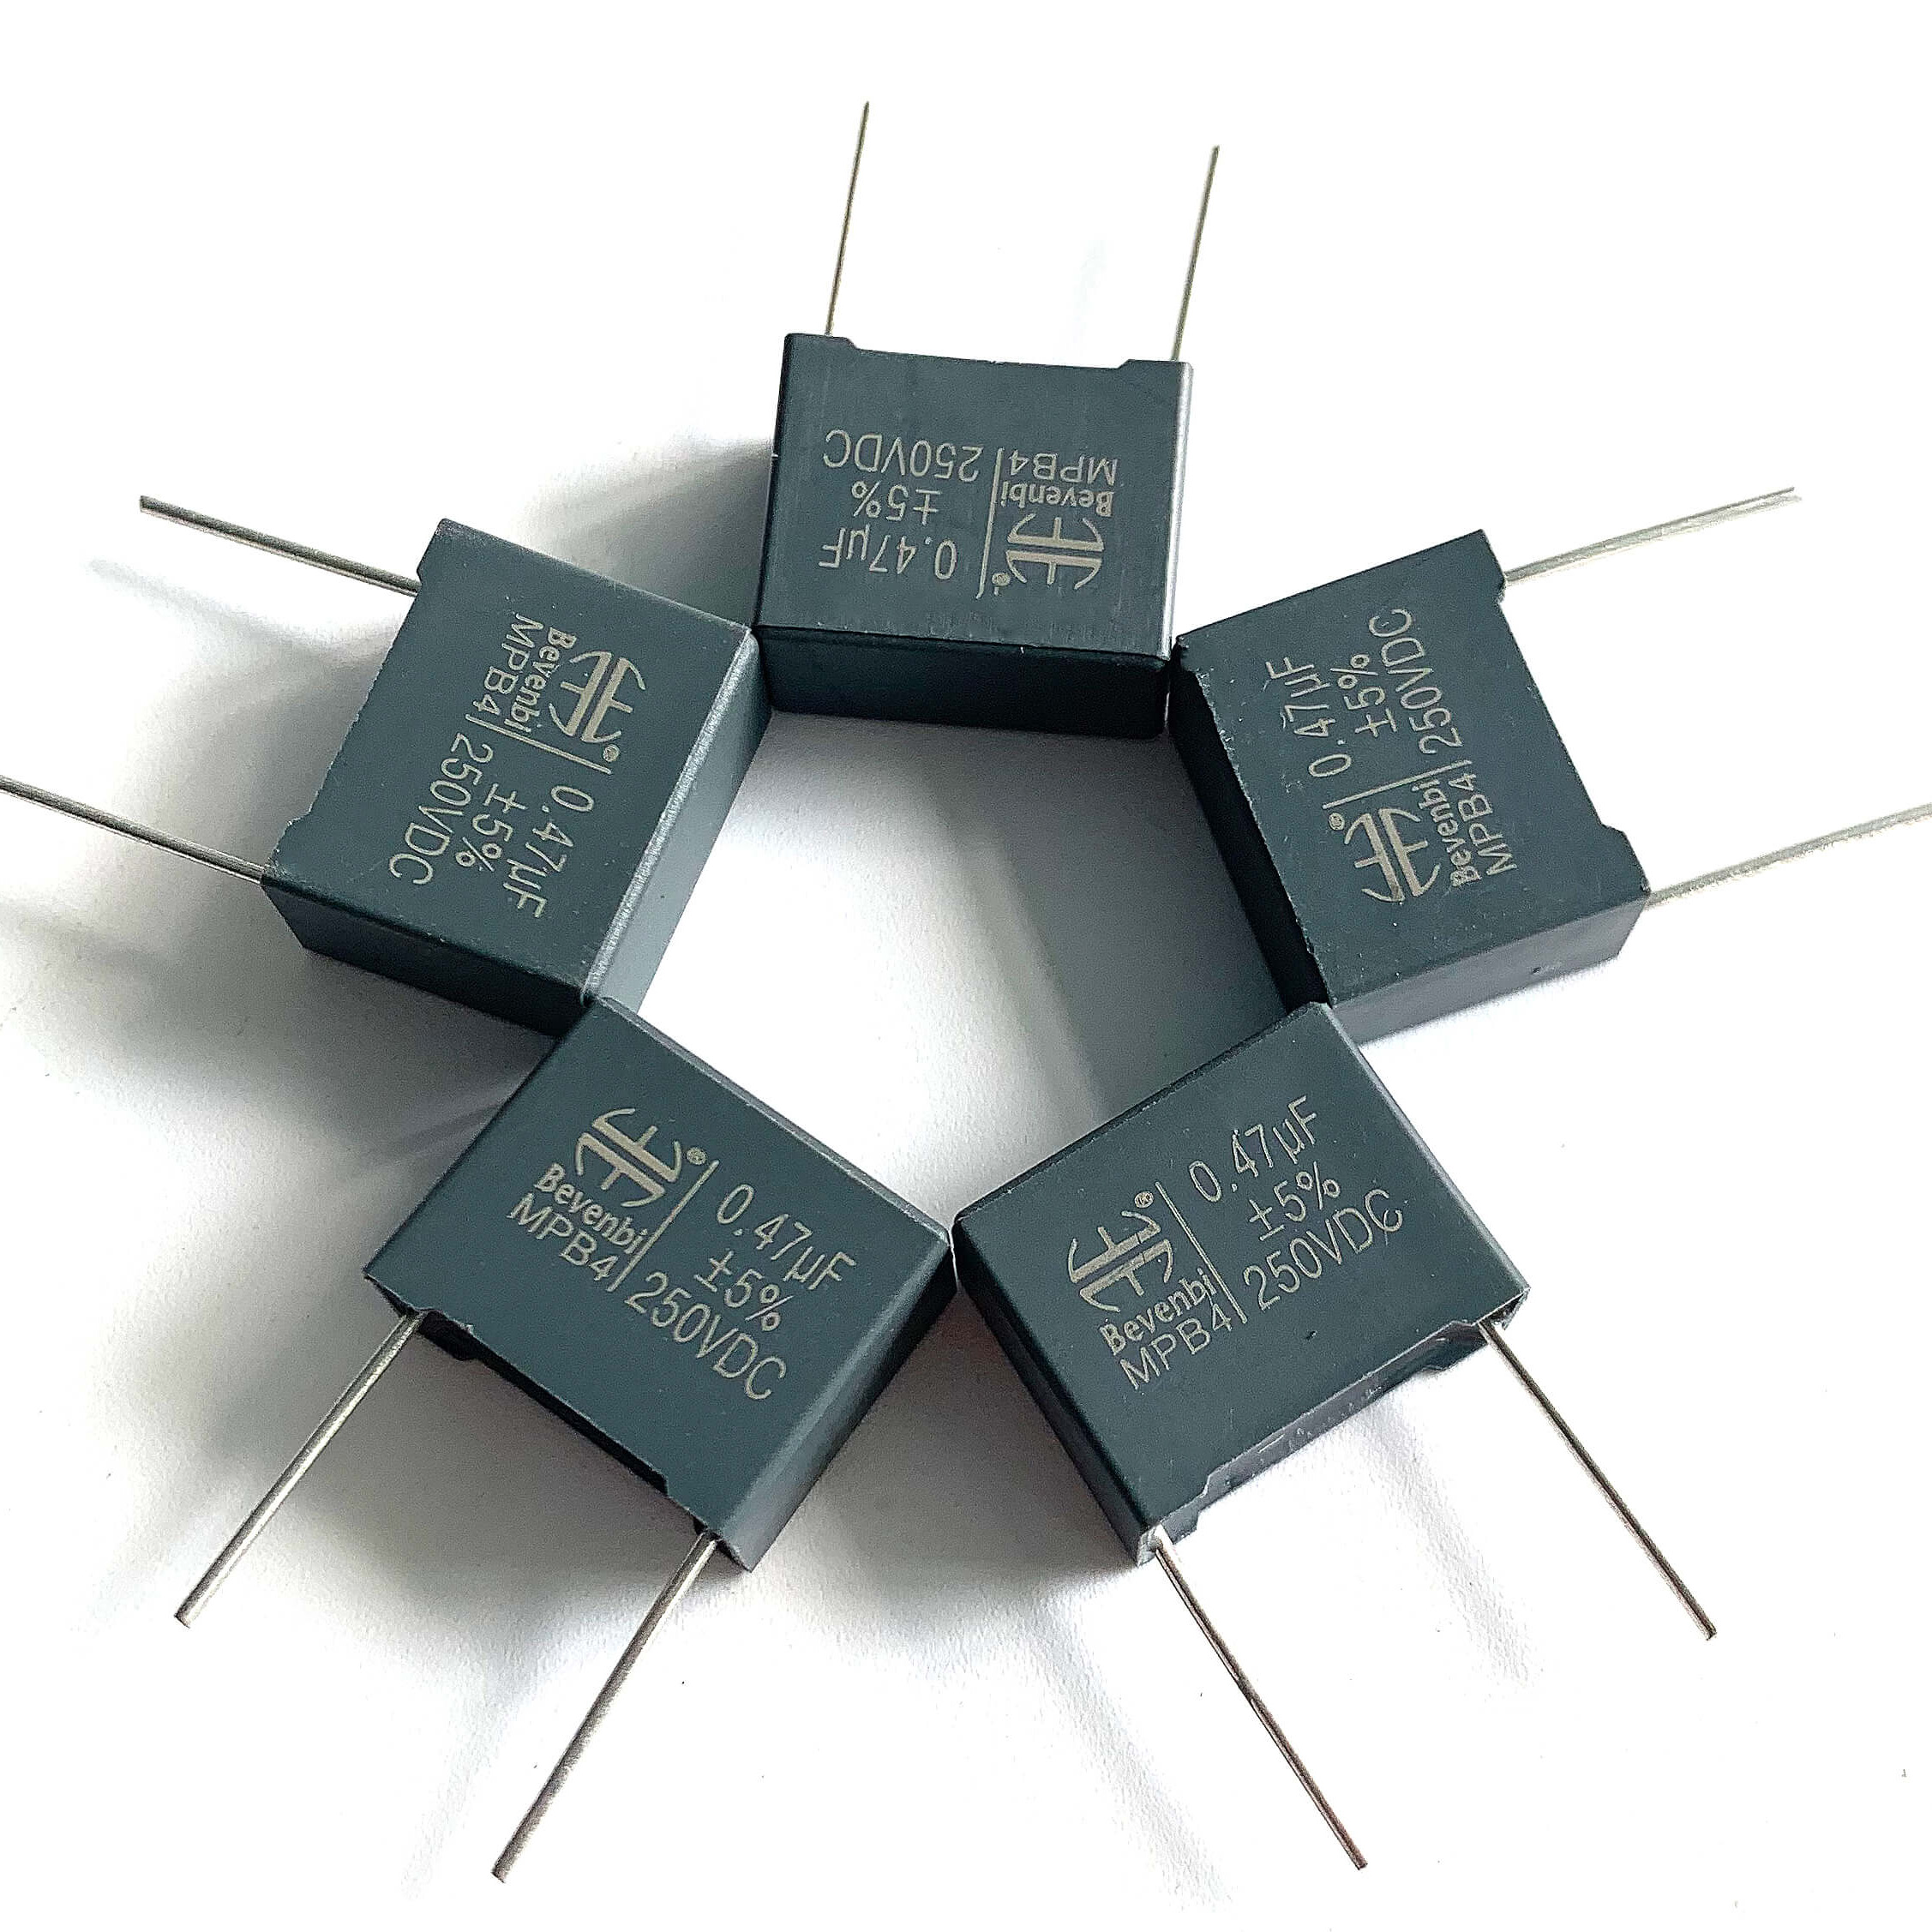 CL23(MEB) Box Metallized Polyester Film Capacitors Featured Image